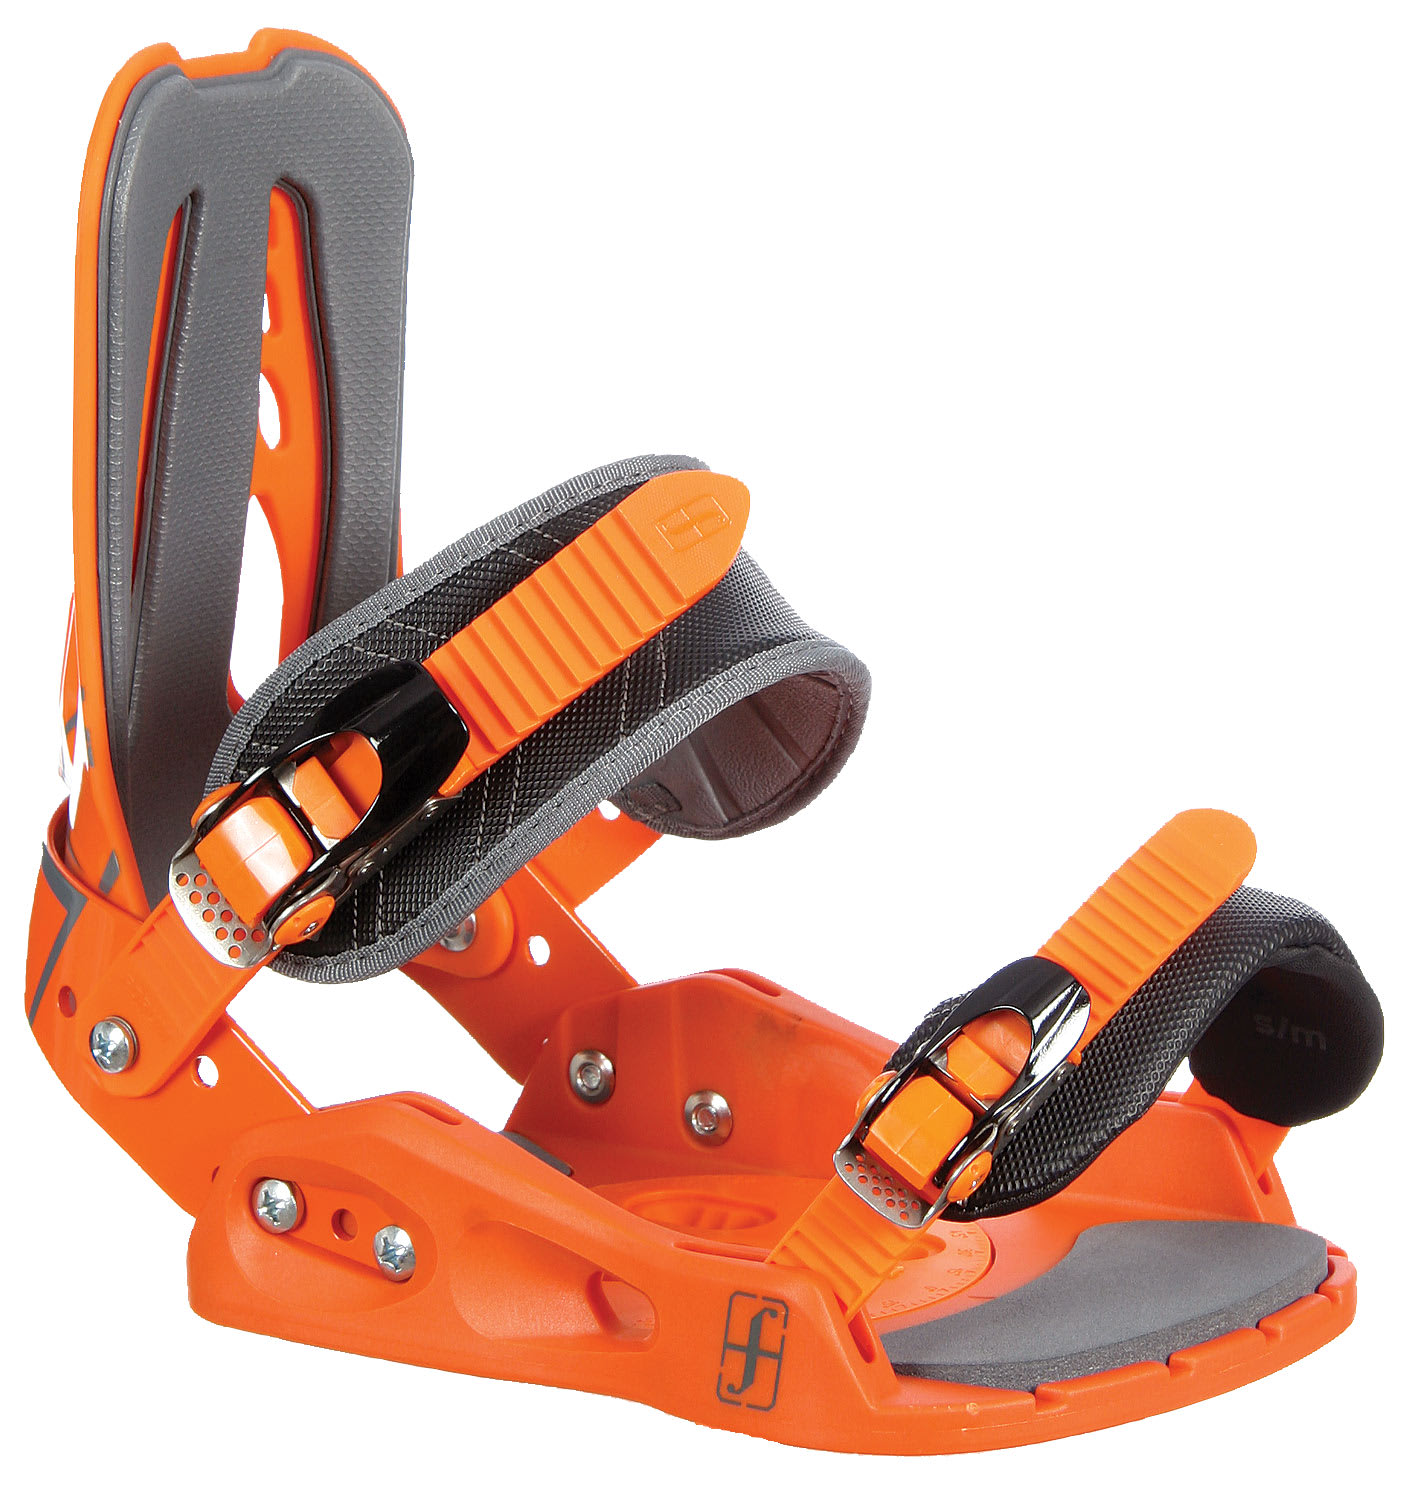 On Sale Forum Recon Snowboard Bindings Up To 80% Off